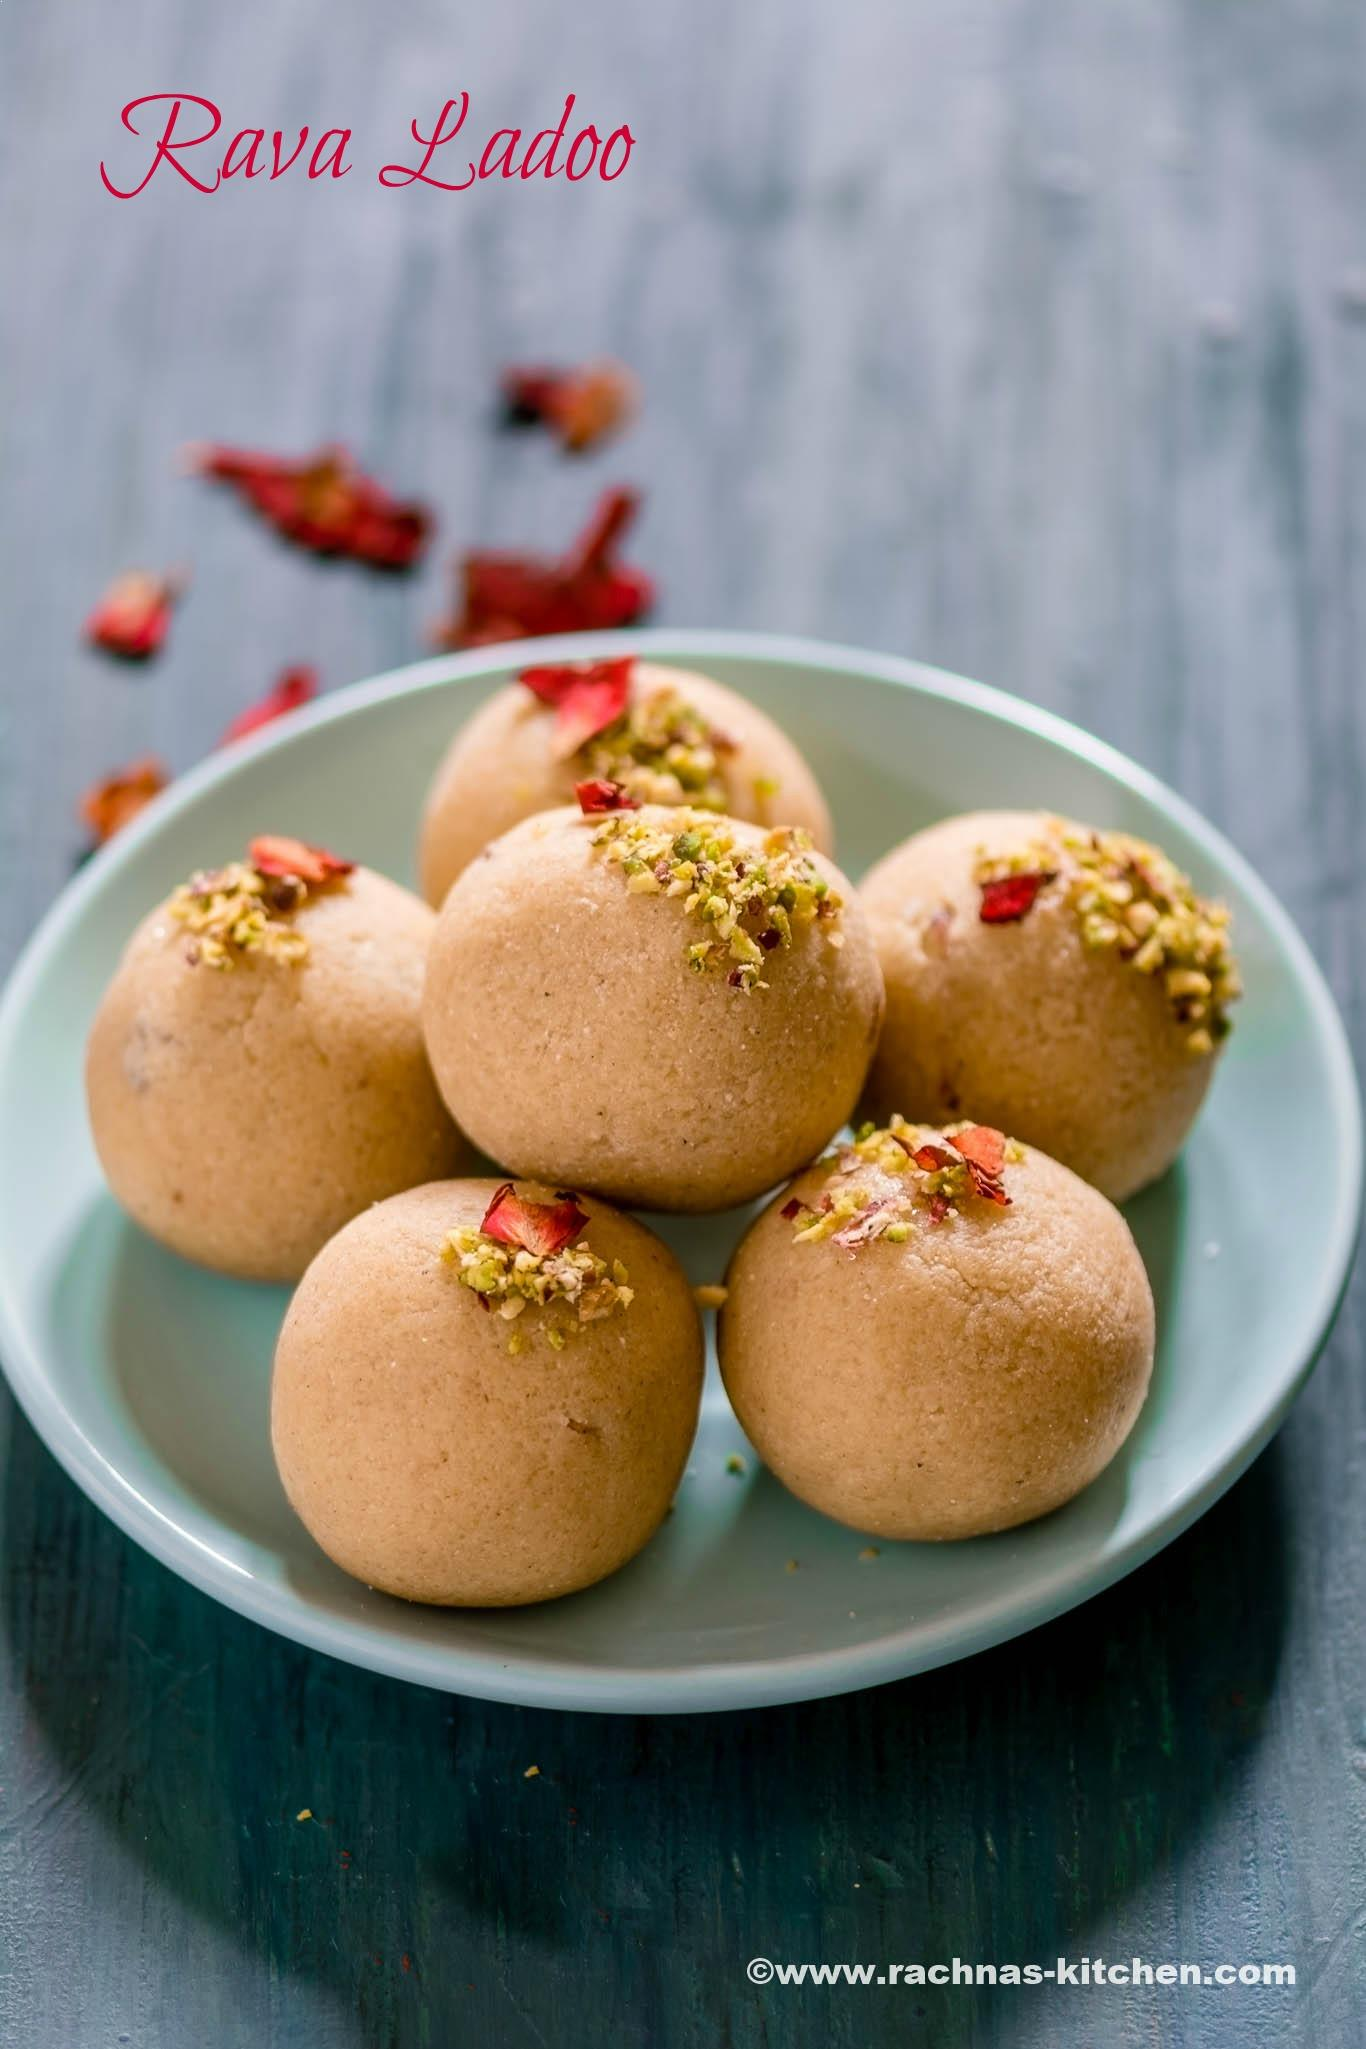 Raksha bandhan recipes Rava ladoo recipe